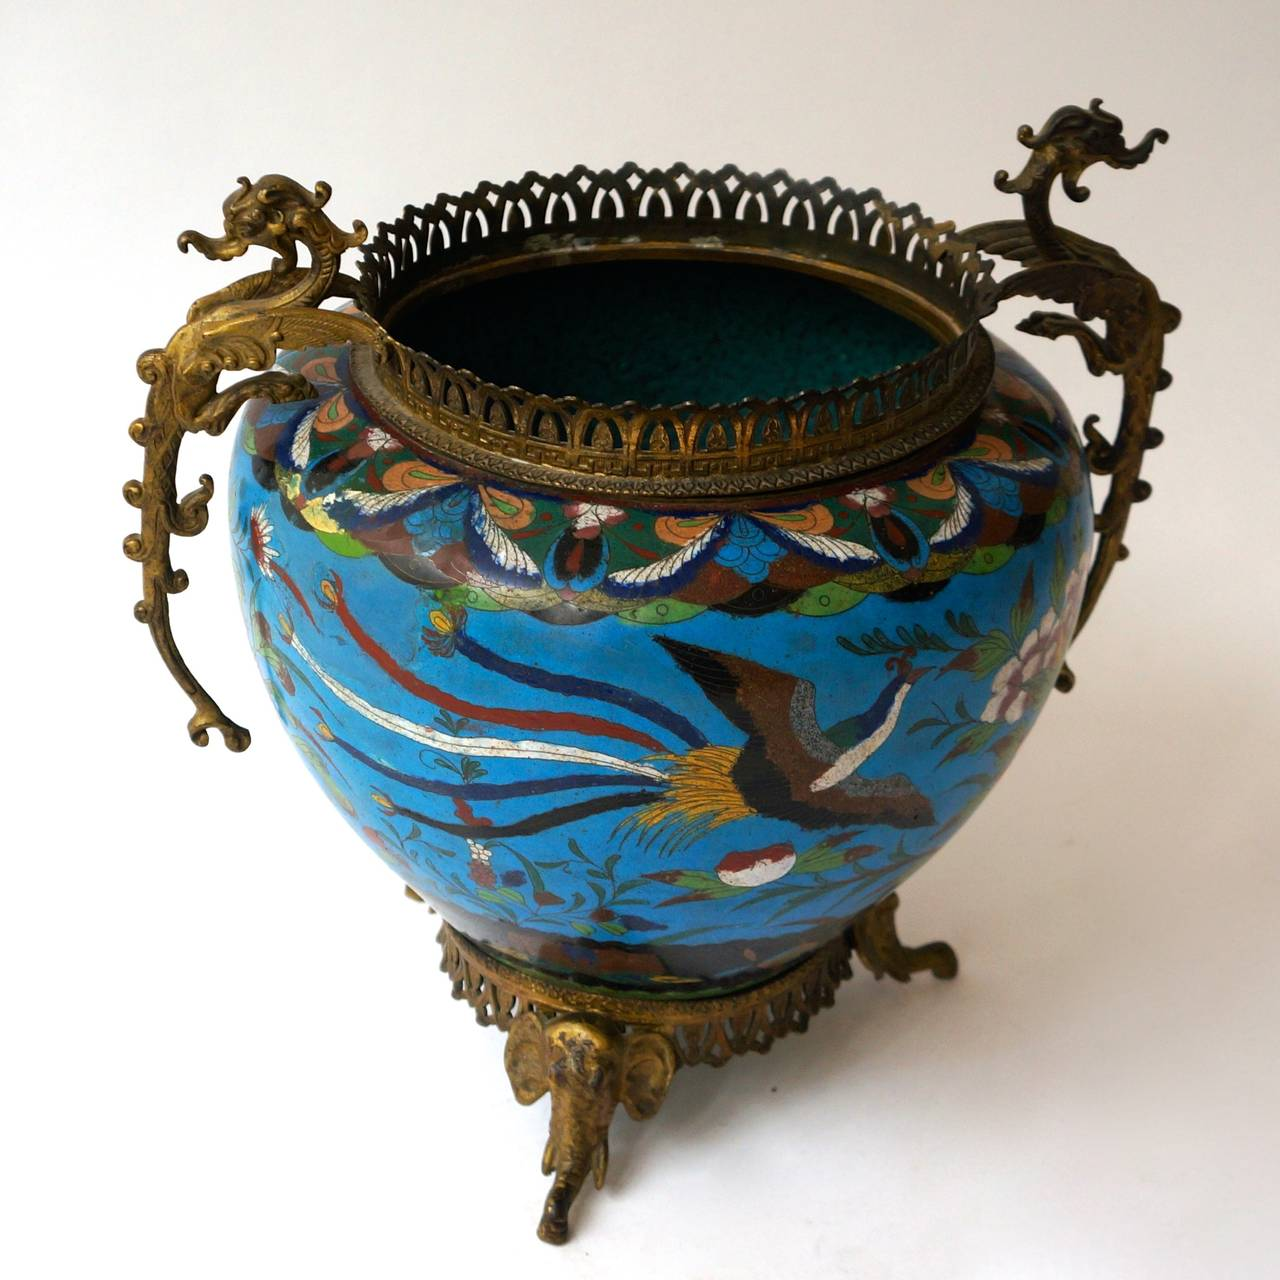 Large Chinese Cloisonné Jardinière or Planter Pot For Sale 1